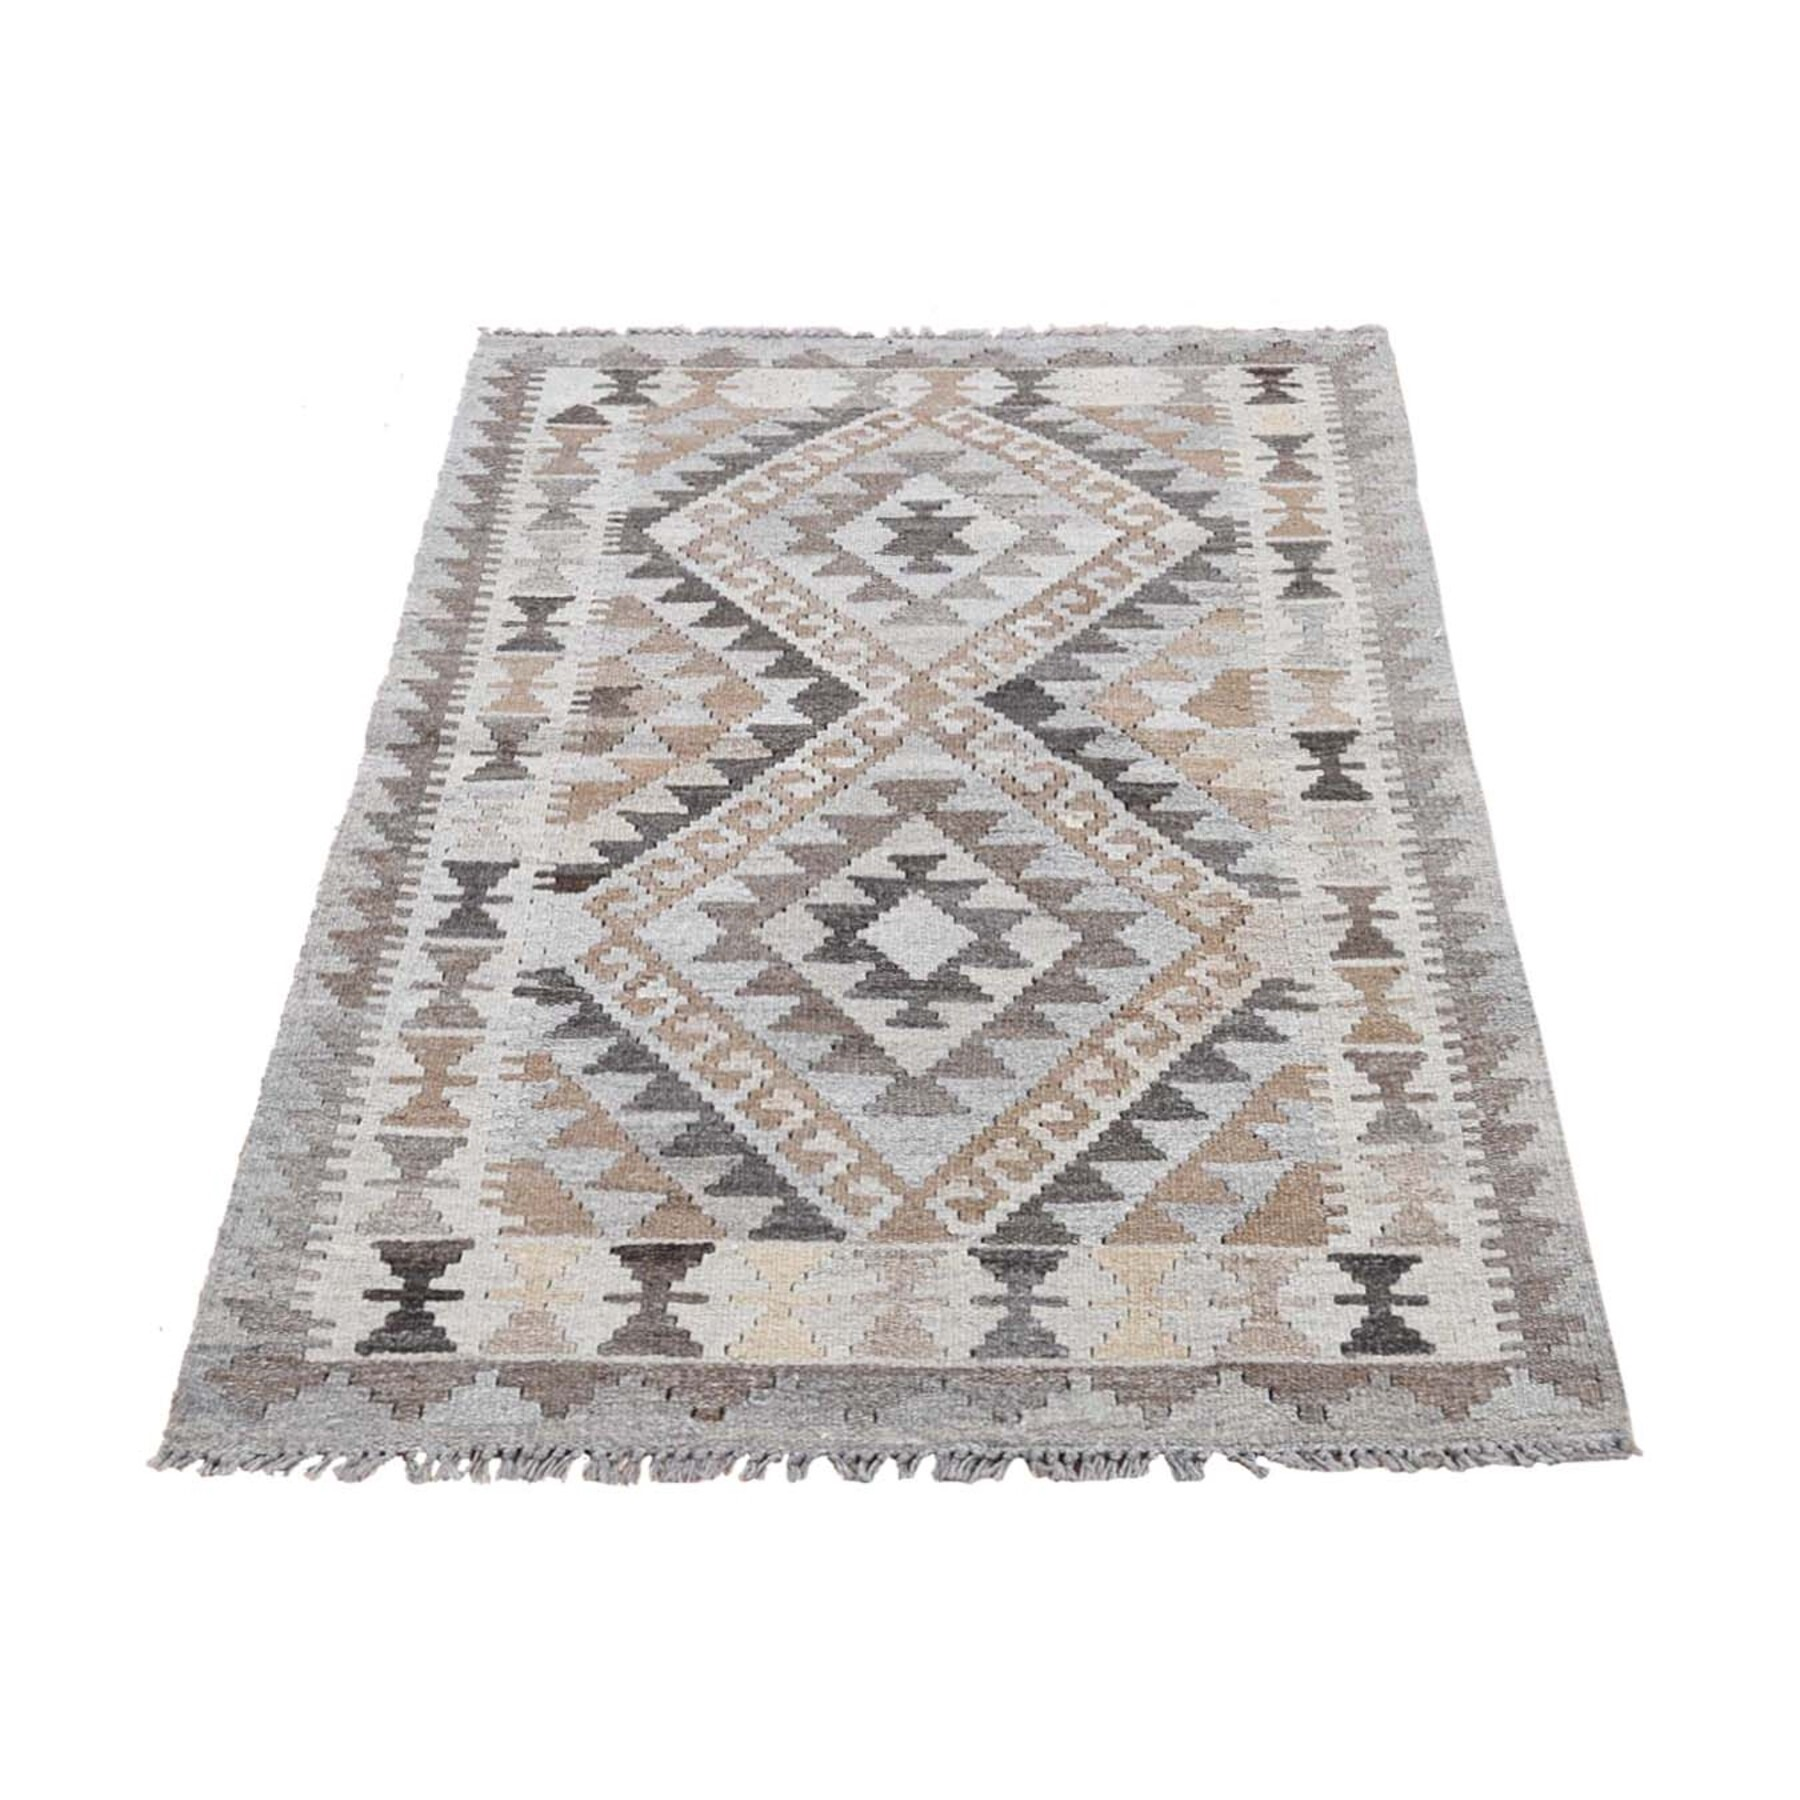 "2'10""X4' Undyed Natural Wool Afghan Kilim Reversible Hand Woven Oriental Rug moad6ec9"